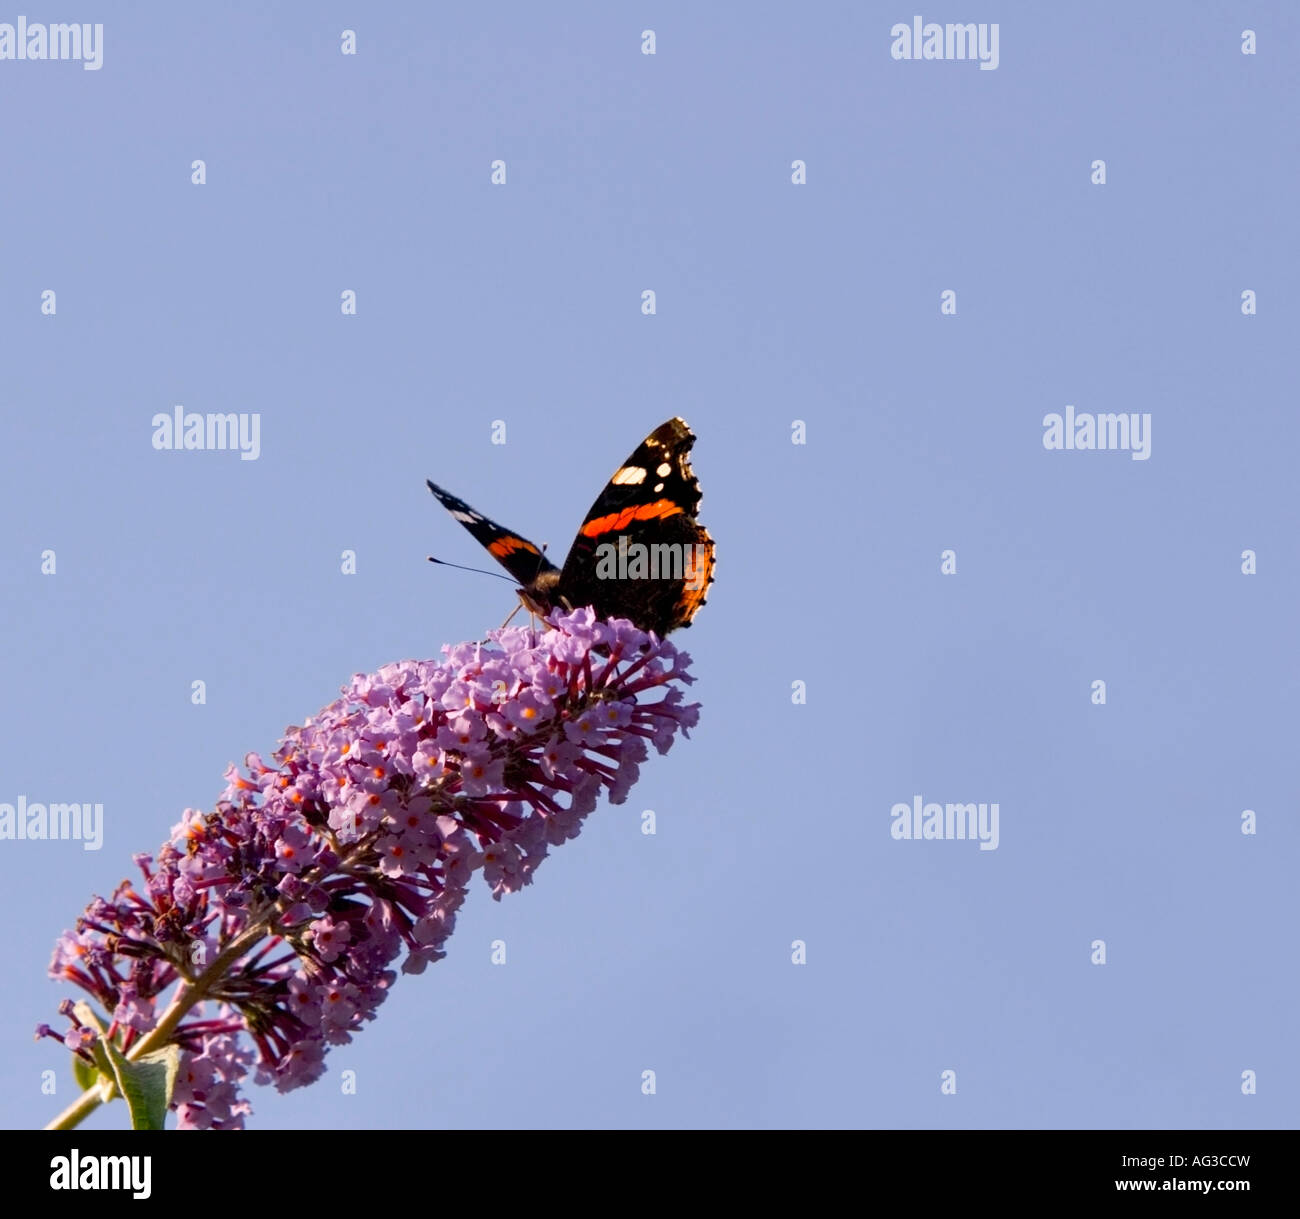 A Red Admiral butterfly feeding on a buddleia shrub - Stock Image